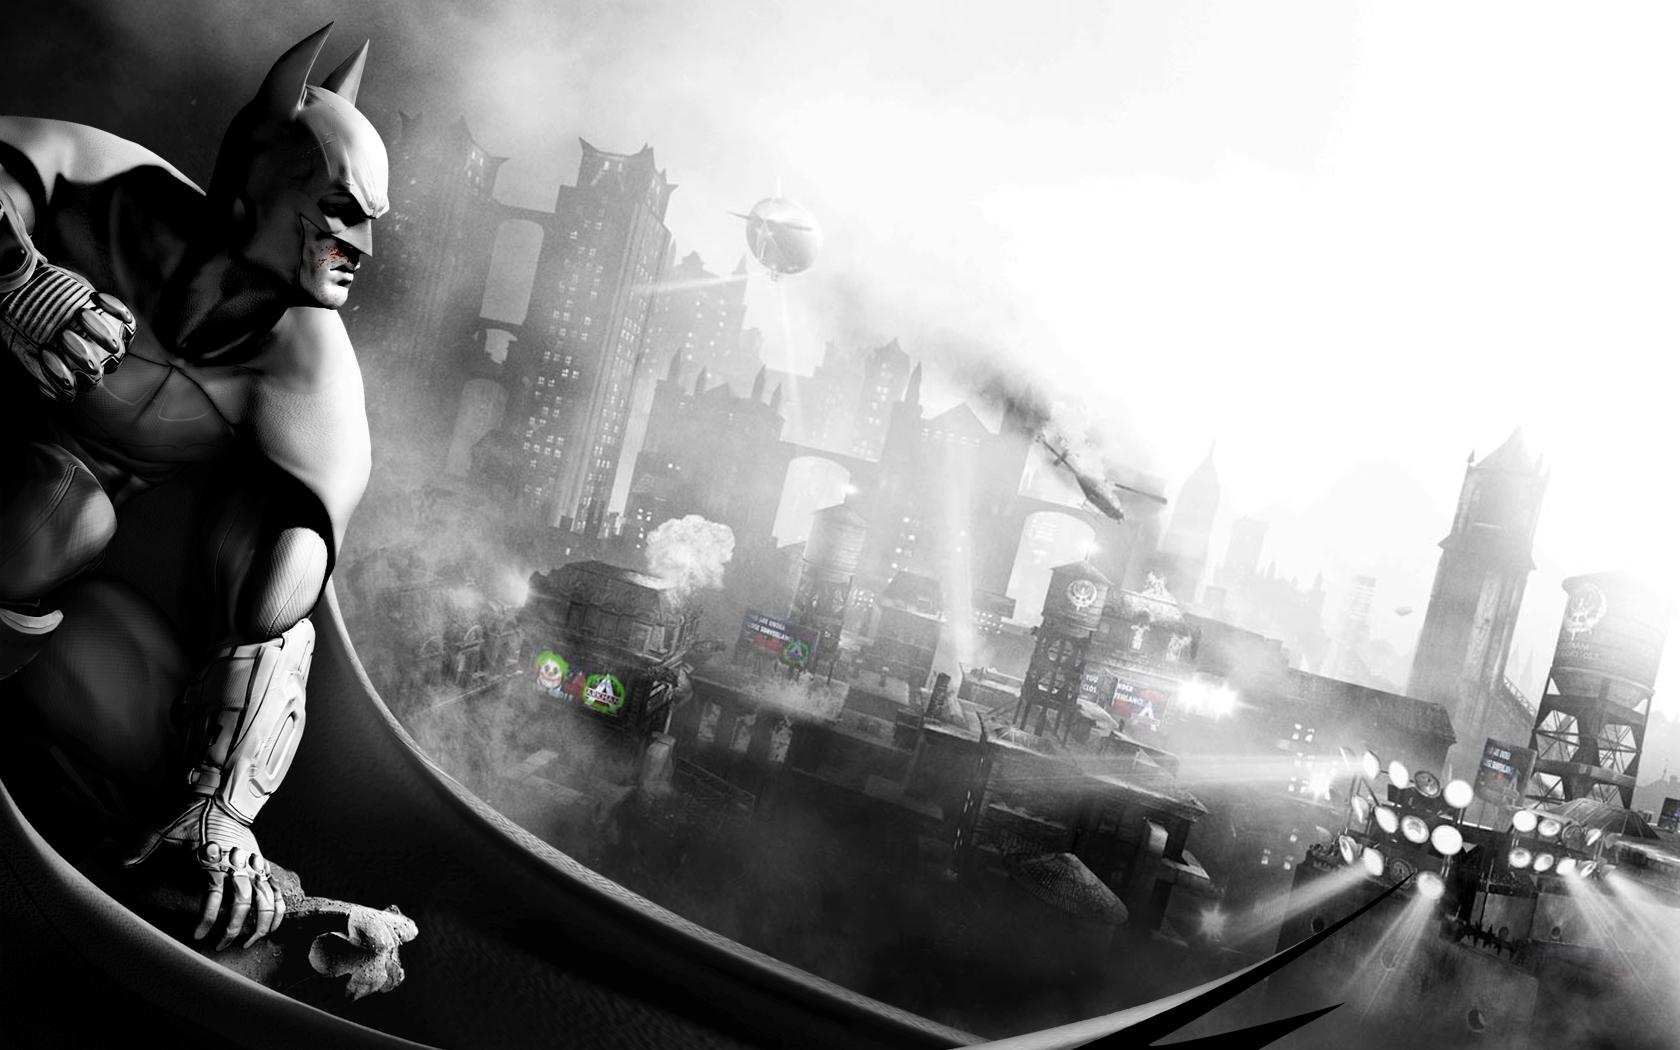 For a real Windows 7 Batman theme check this out 1680x1050